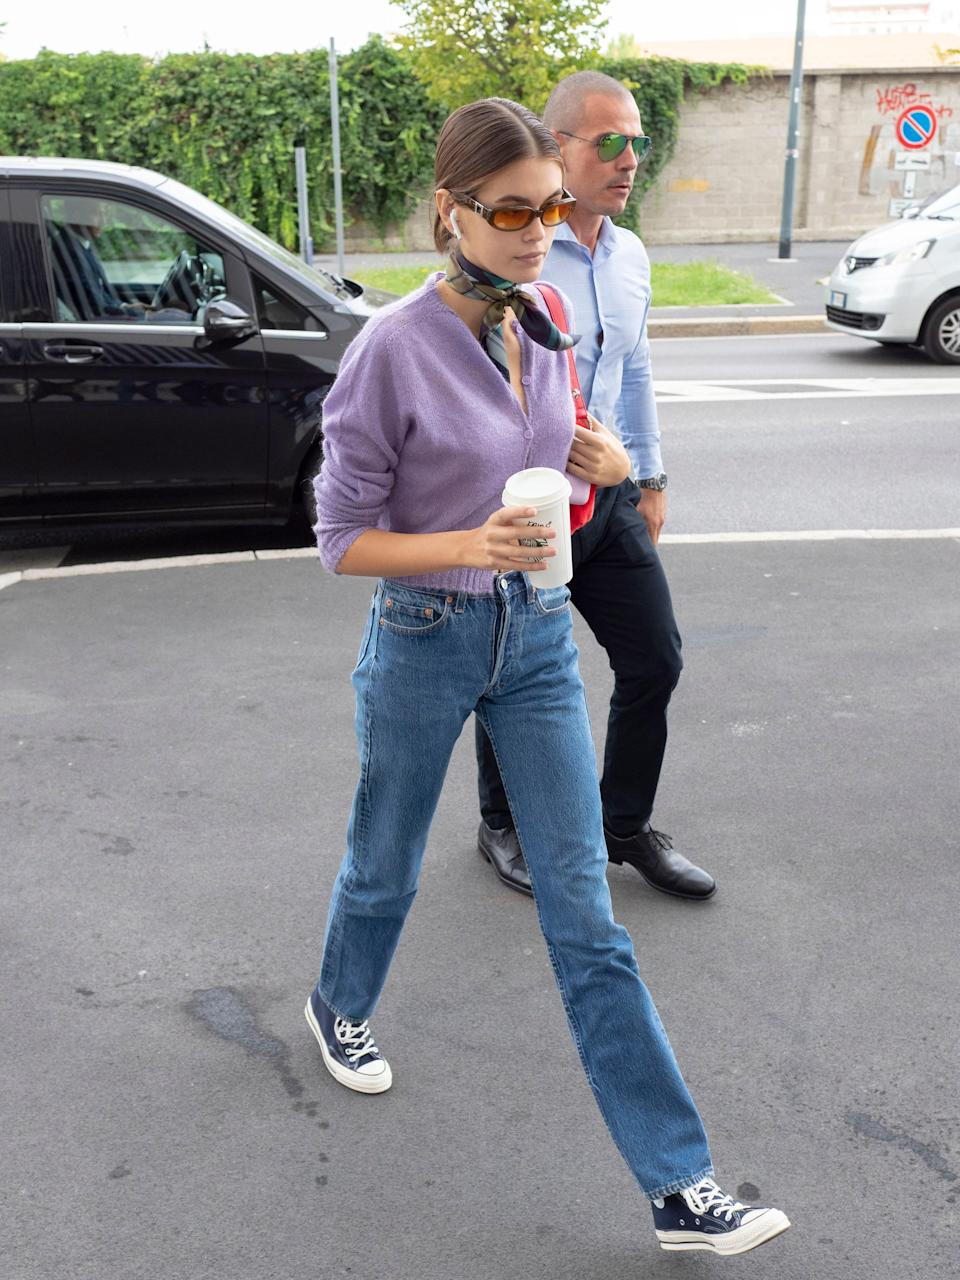 Back to sneakers, she elevated this cardigan look with rose-tinted sunnies and a tie around her neck.